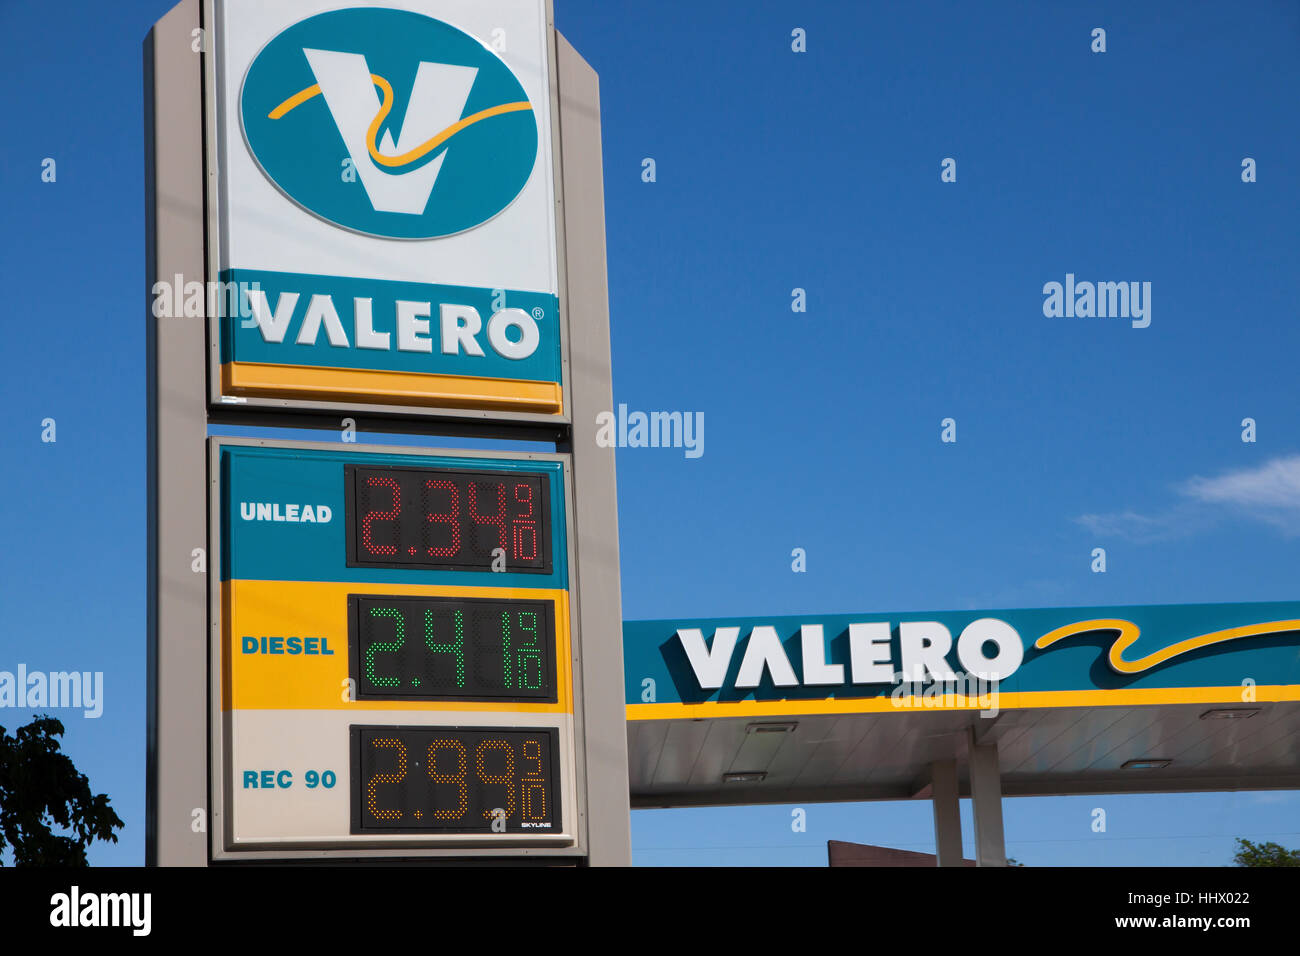 Low Gas Prices >> Valero Gas Station Showing Low Gas Prices Stock Photo 131492538 Alamy